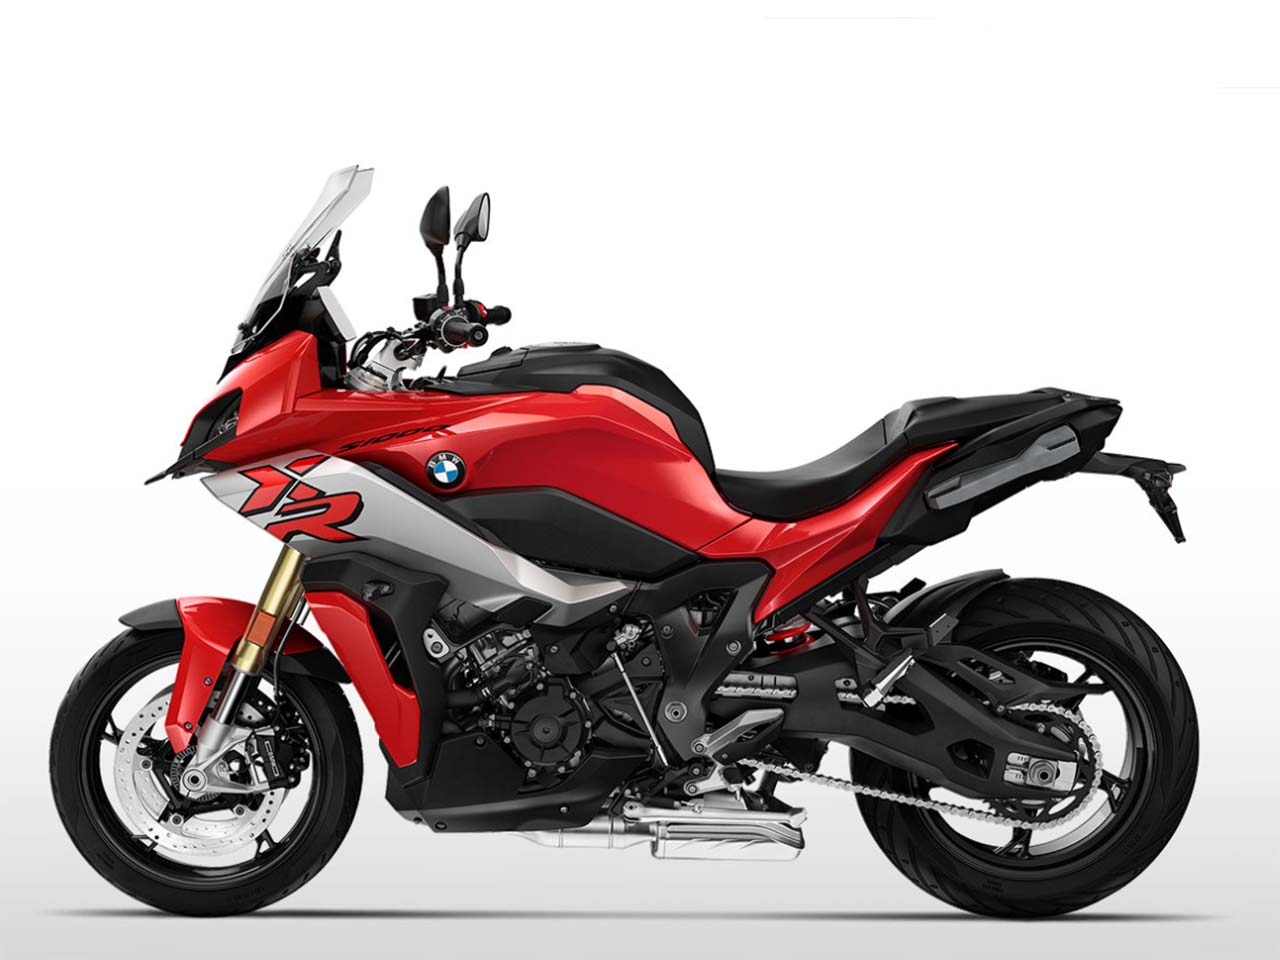 2020 BMW S 1000 XR India launch price Rs 20.90 lakh